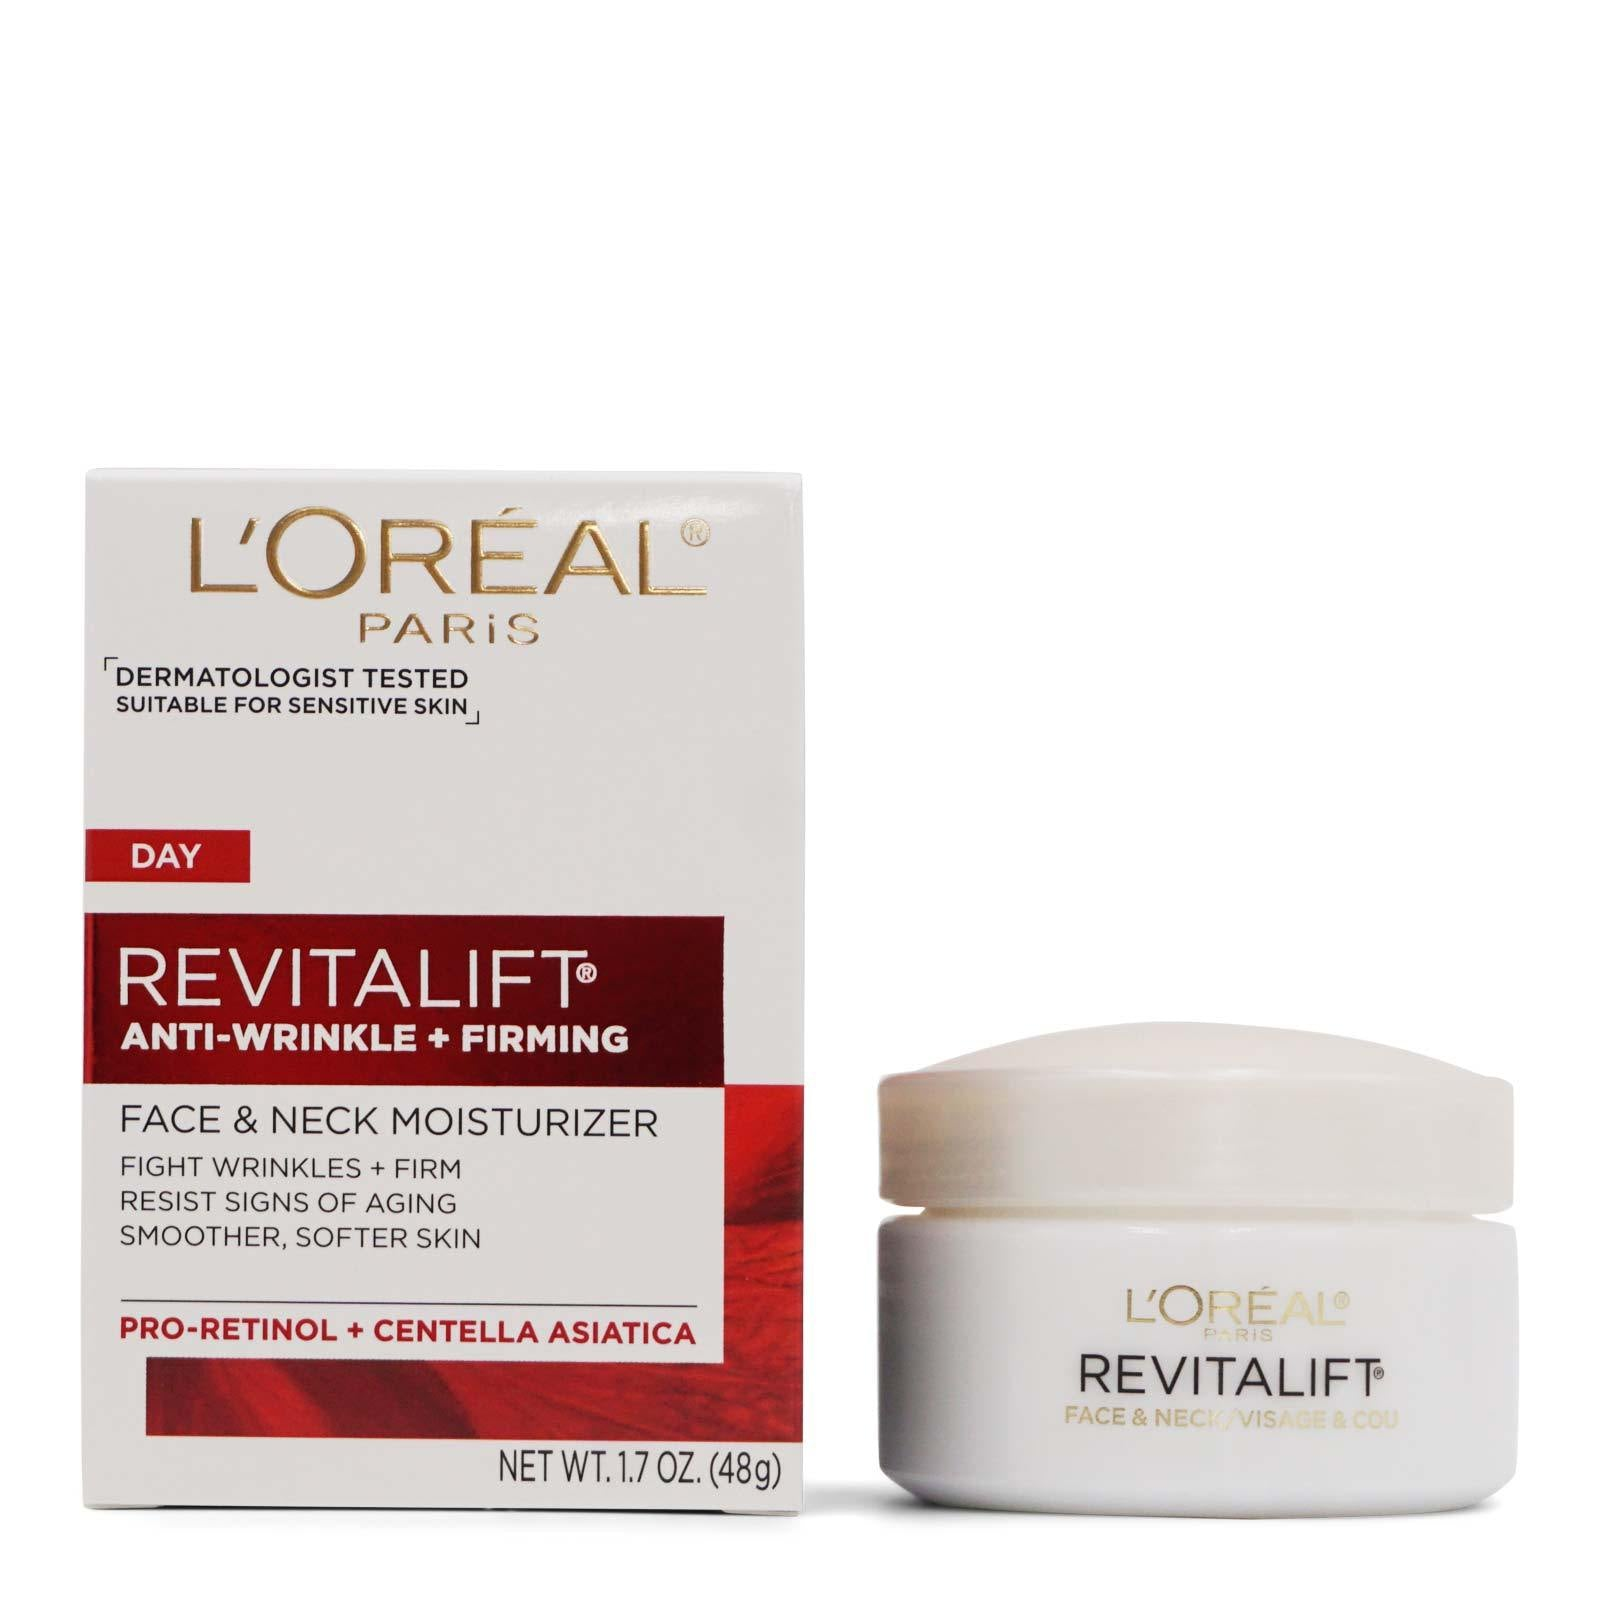 L'Oreal Revitalift Anti-wrinkle + Firming Face & Neck Cream (24/cs)